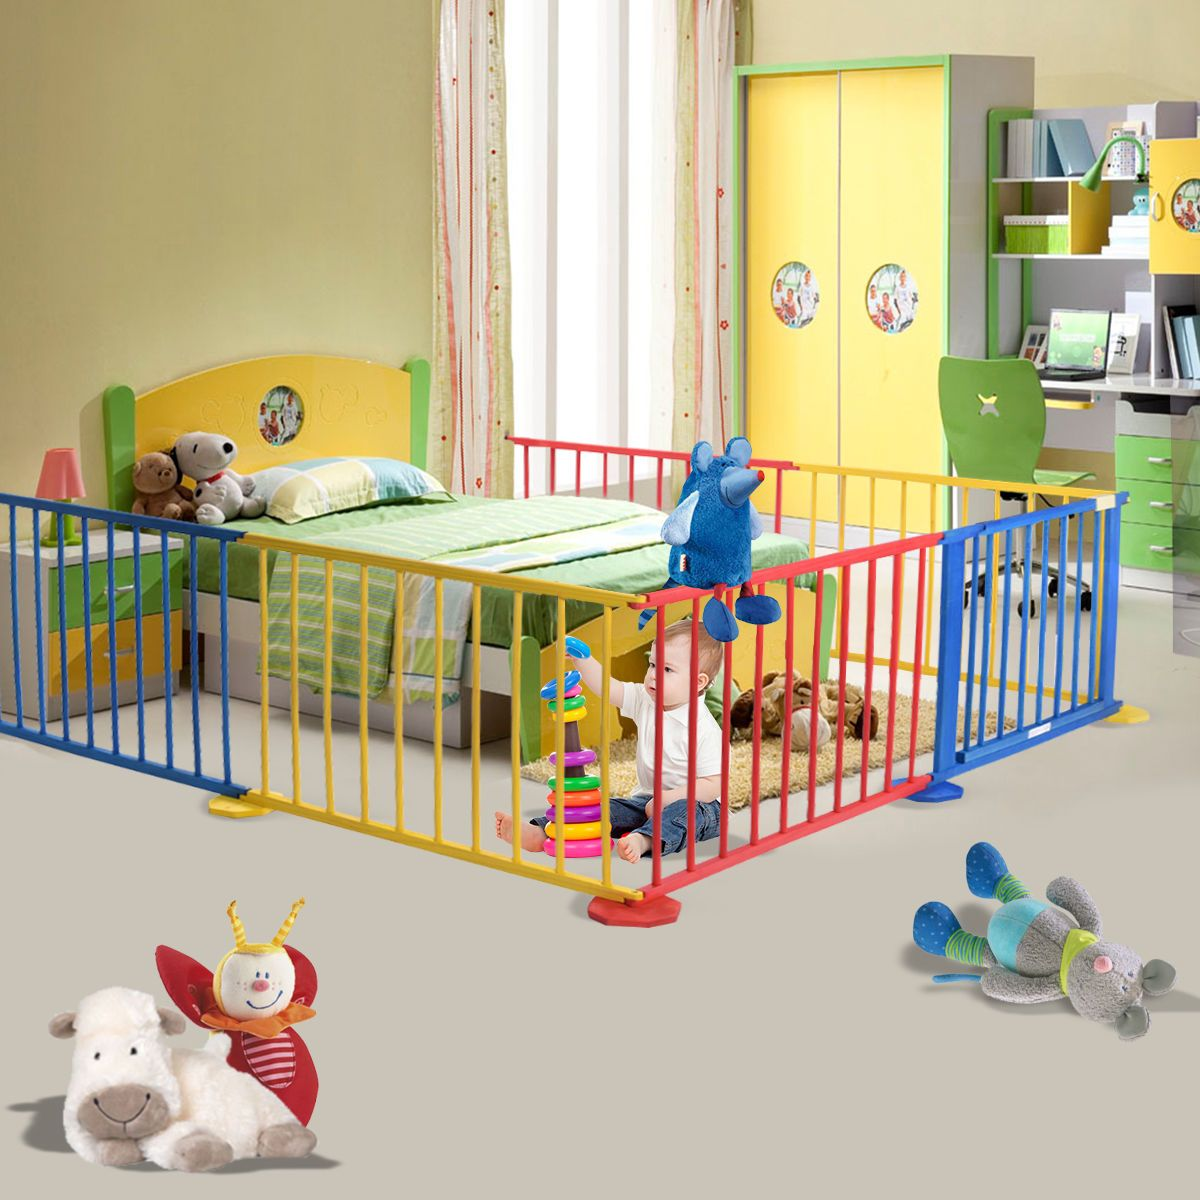 Baby Playpen 6 Panel Colors Wooden Frame Children Playard. Low Cost Wall Decor. Golf Party Decorations. Costco Dining Room Sets. Vase Decoration Ideas. Luau Table Decorations. Dining Room Sets Ikea. Horizontal Decorative Wall Mirrors. Decorative Waterfalls For Home